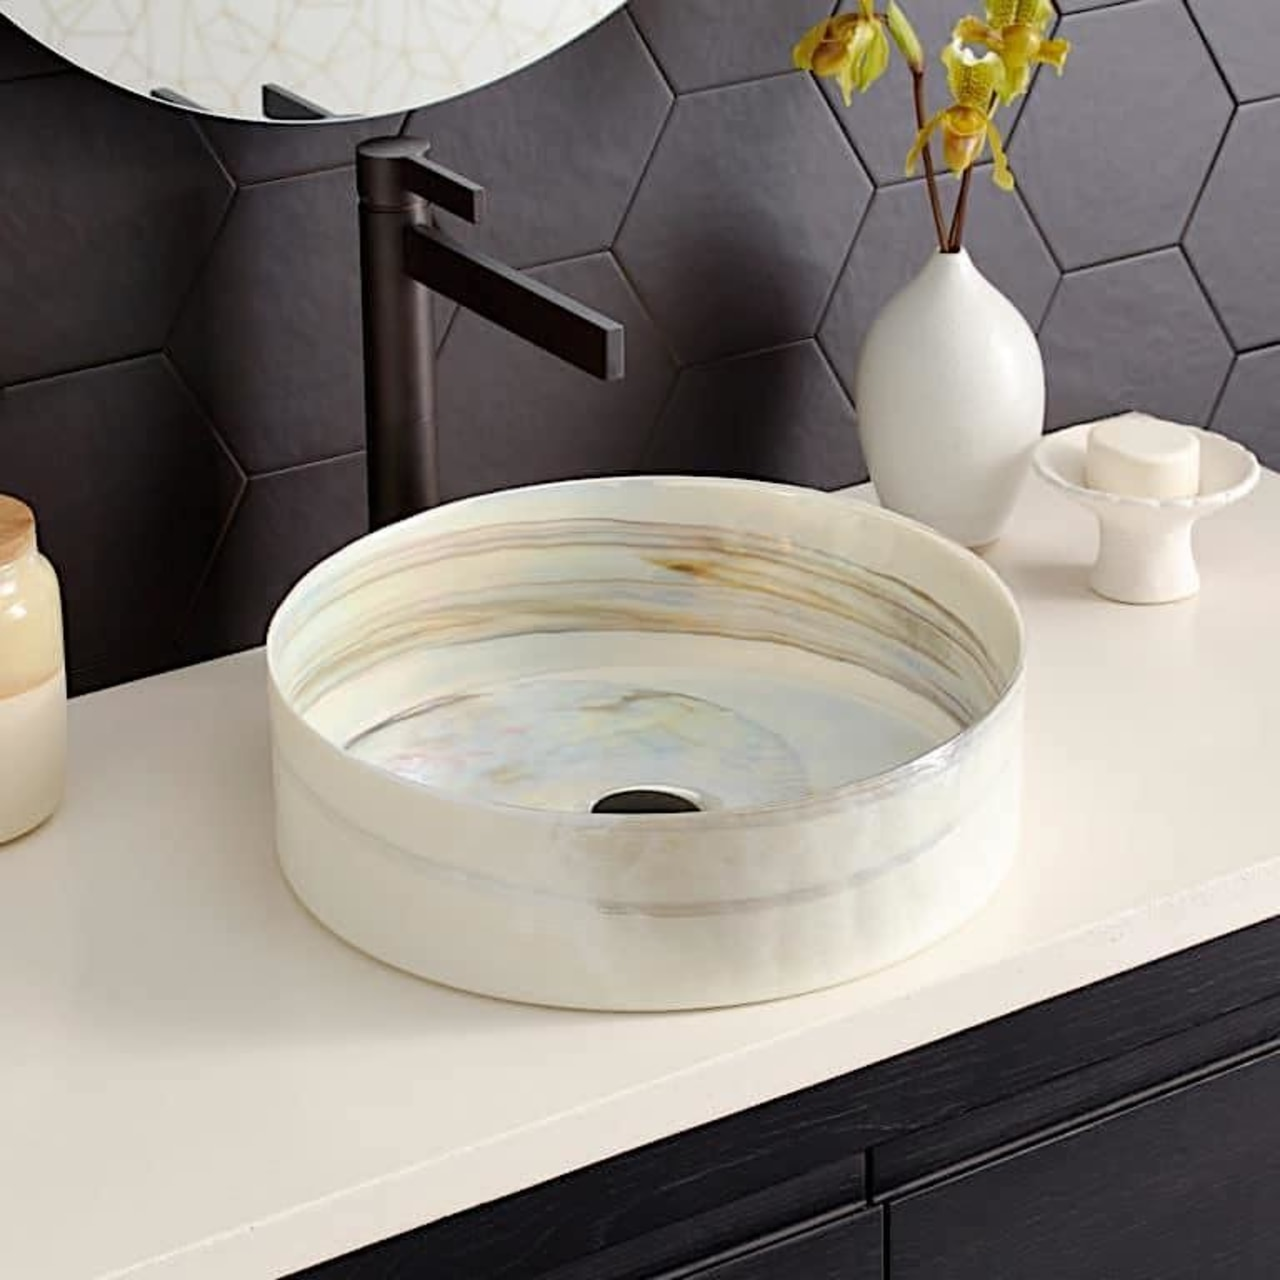 Native Trails: Murano Collection basin – the solid white, black